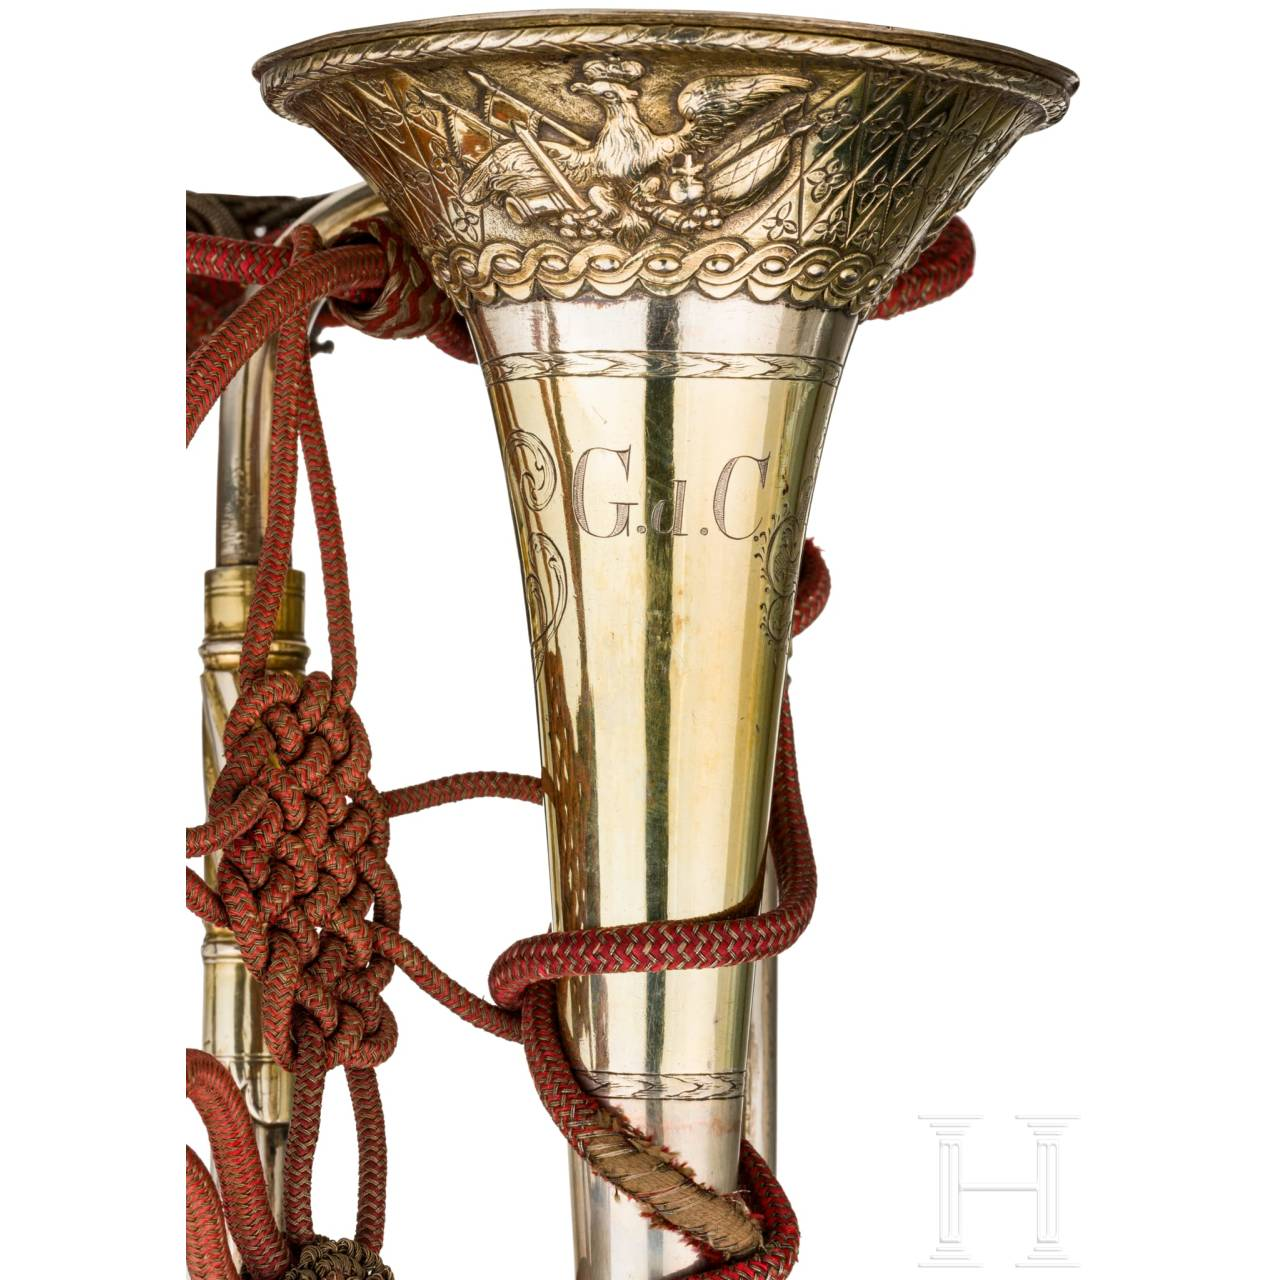 A silver fanfare trumpet of the Regiment Garde du Corps, dated 1784